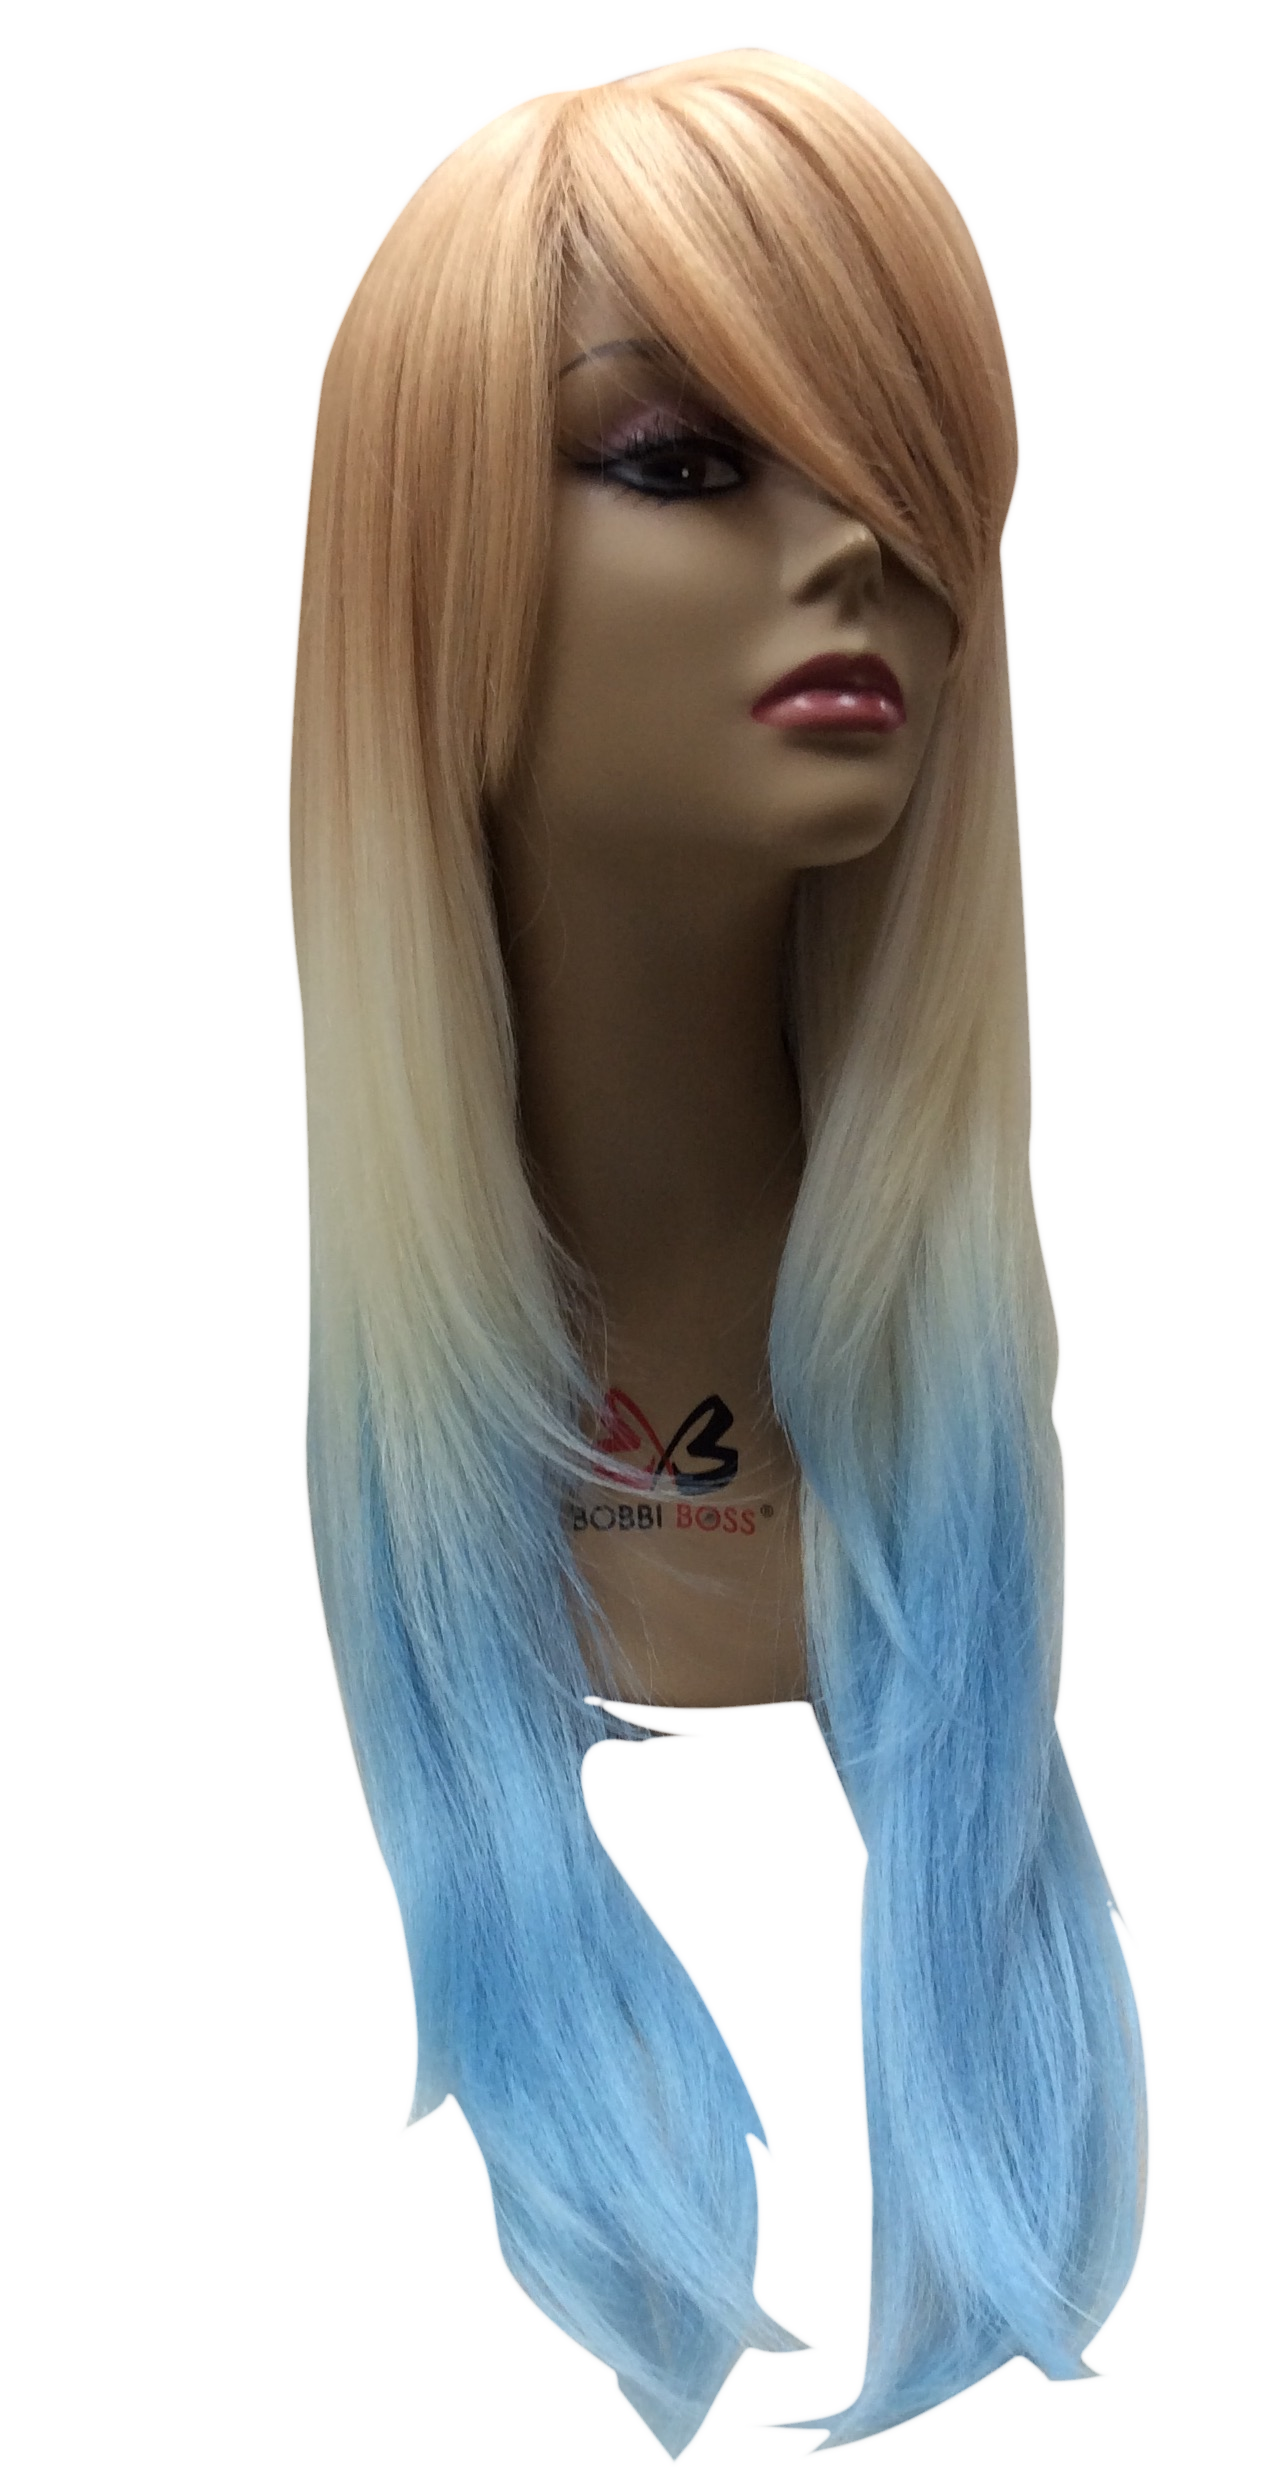 Transparent jeffrey wig. Wigs and hair extensions